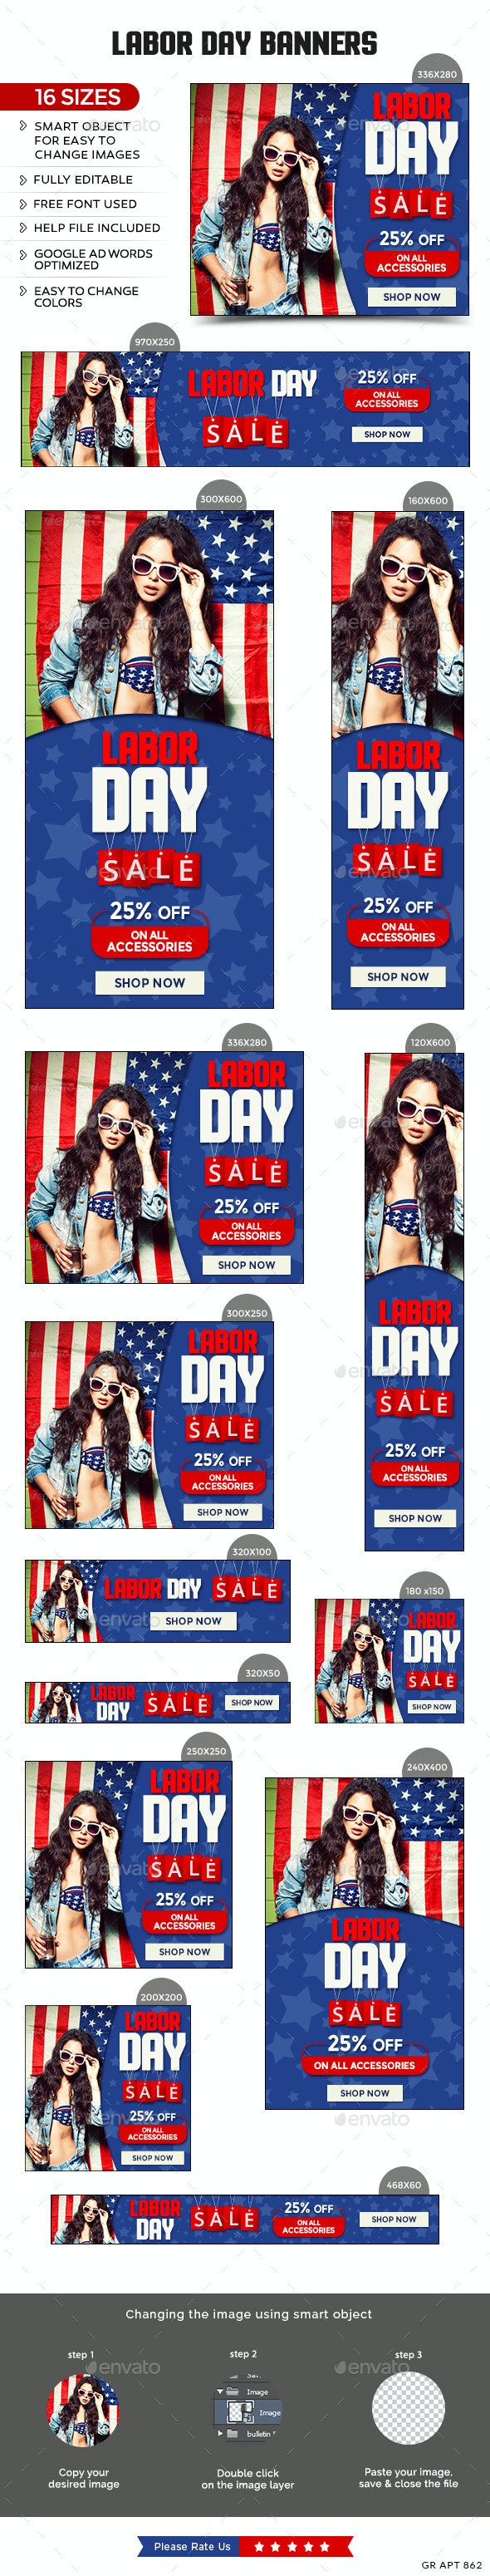 Labor Day Sale Banners - Banners & Ads Web Elements